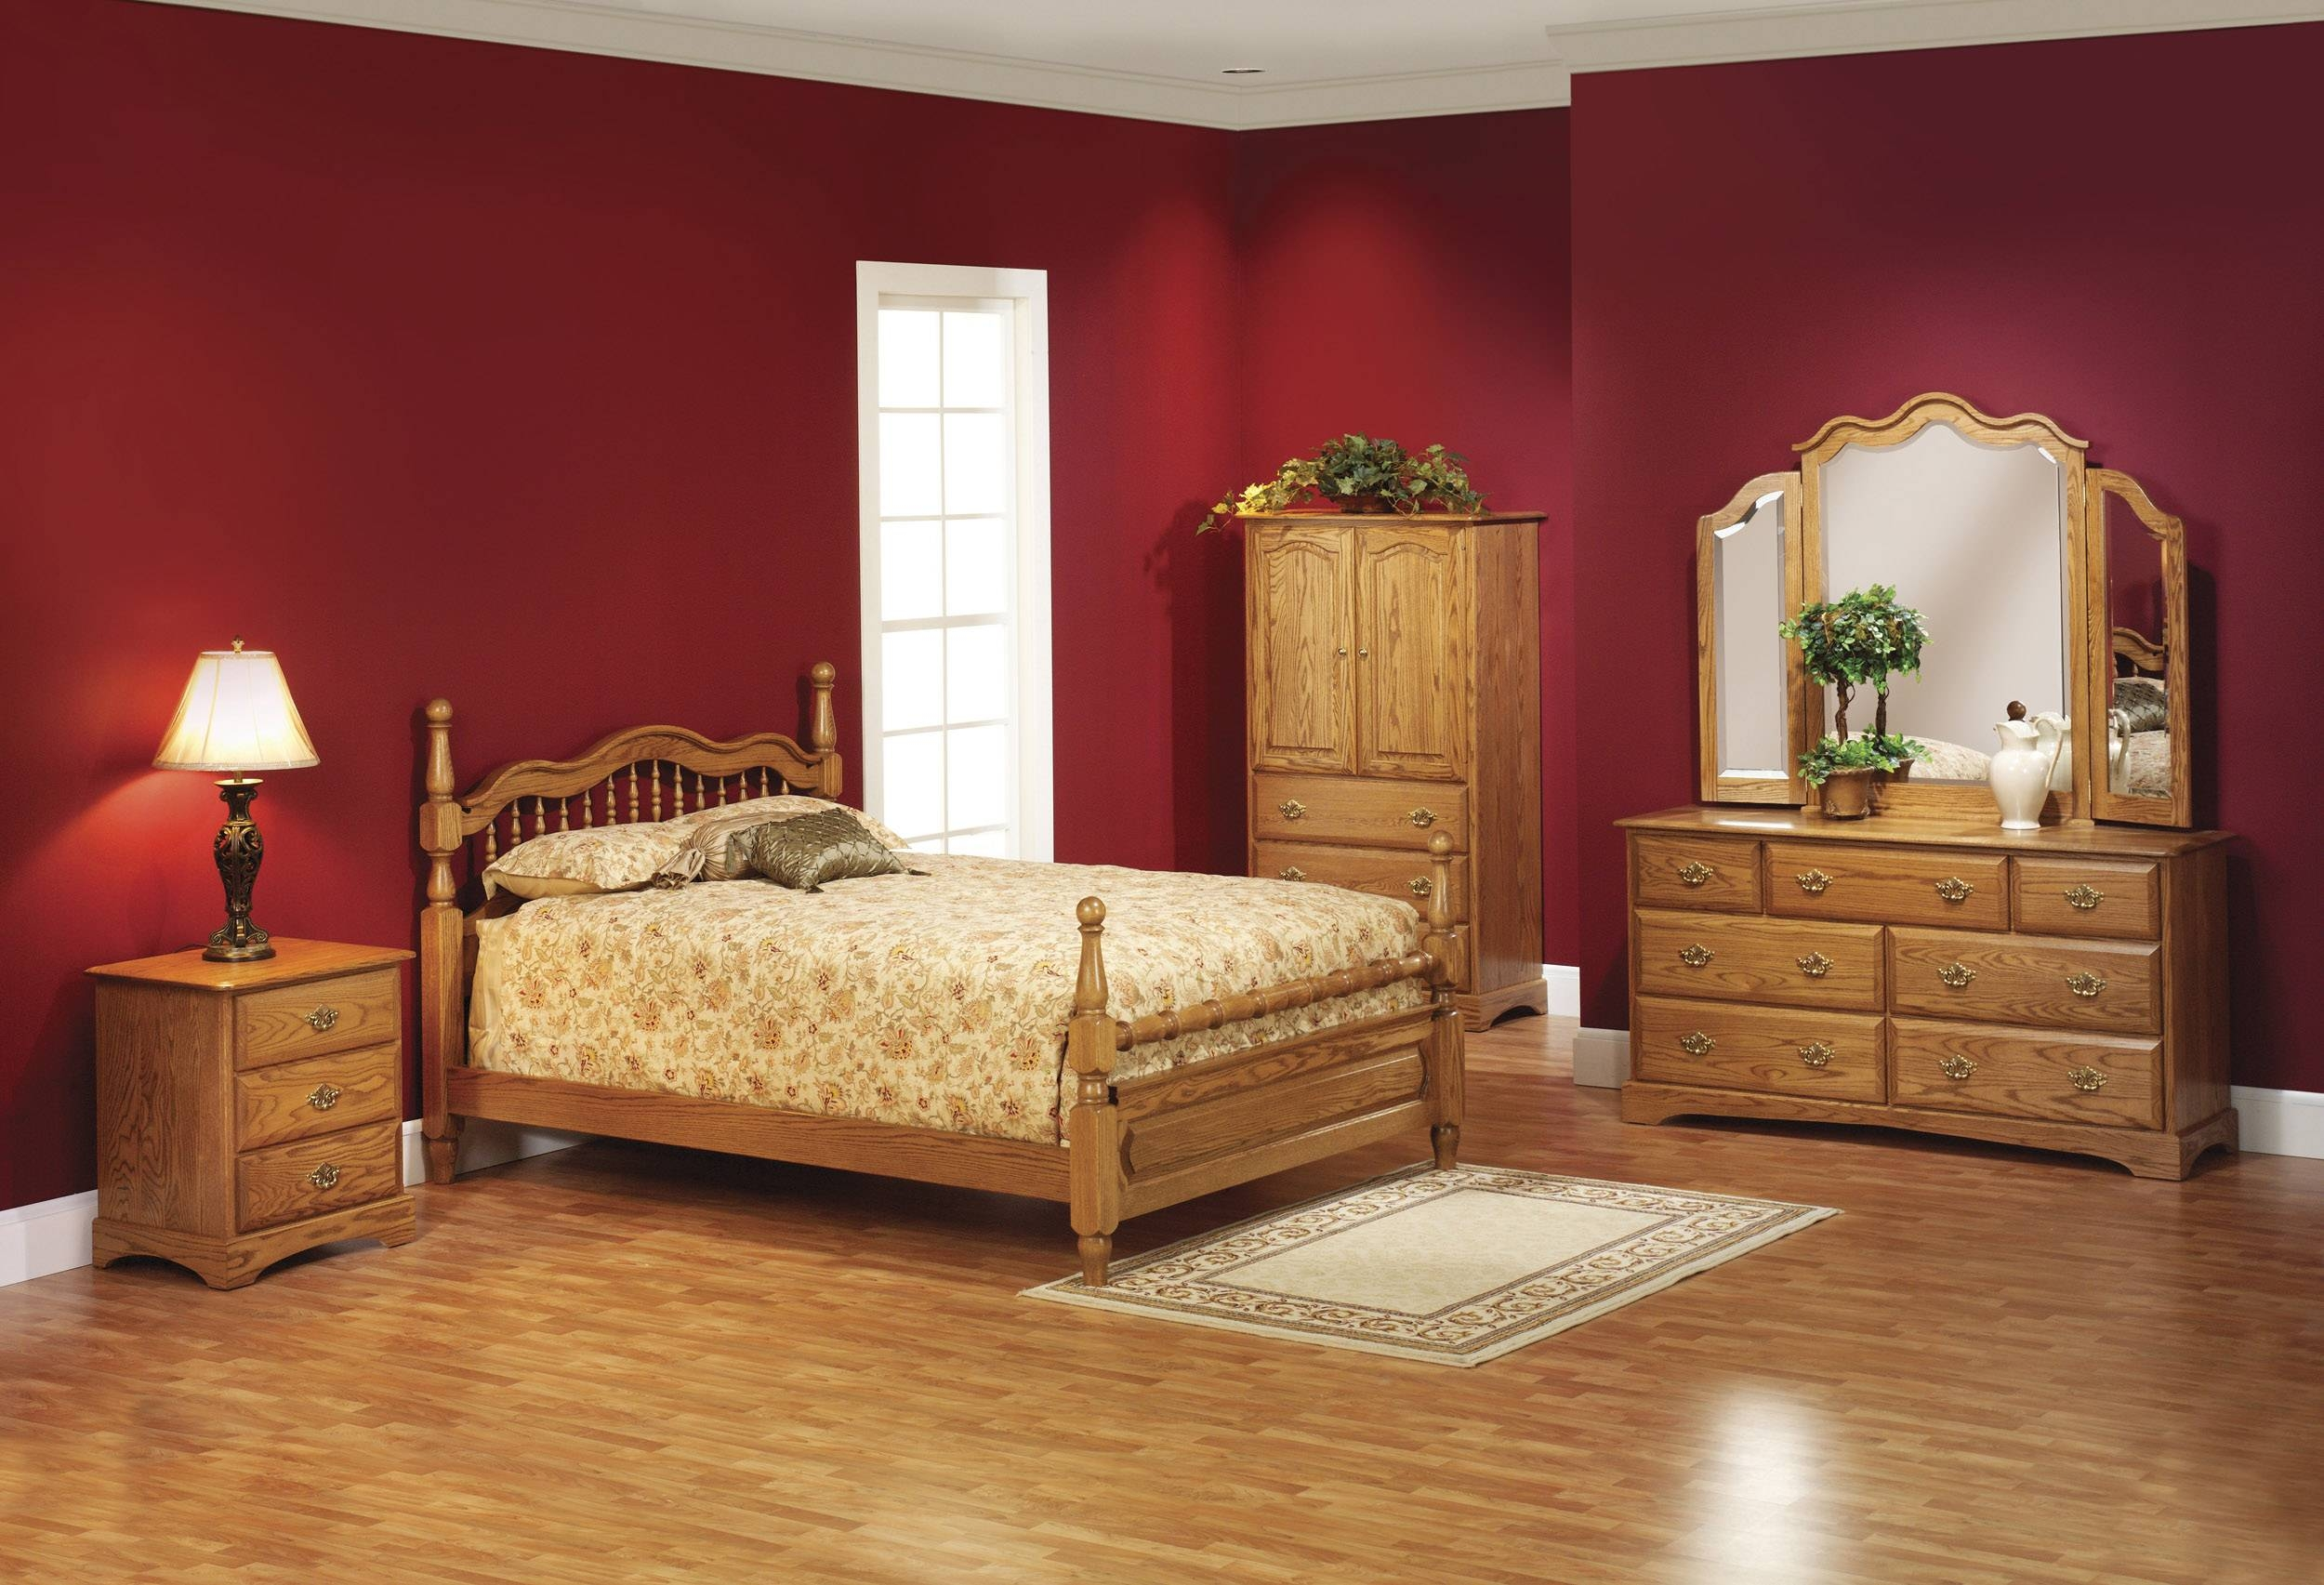 Wooden Furniture Elegant Bedroom With Wooden Bed And Wooden within Dark Wood Wardrobe Sets (Image 30 of 30)